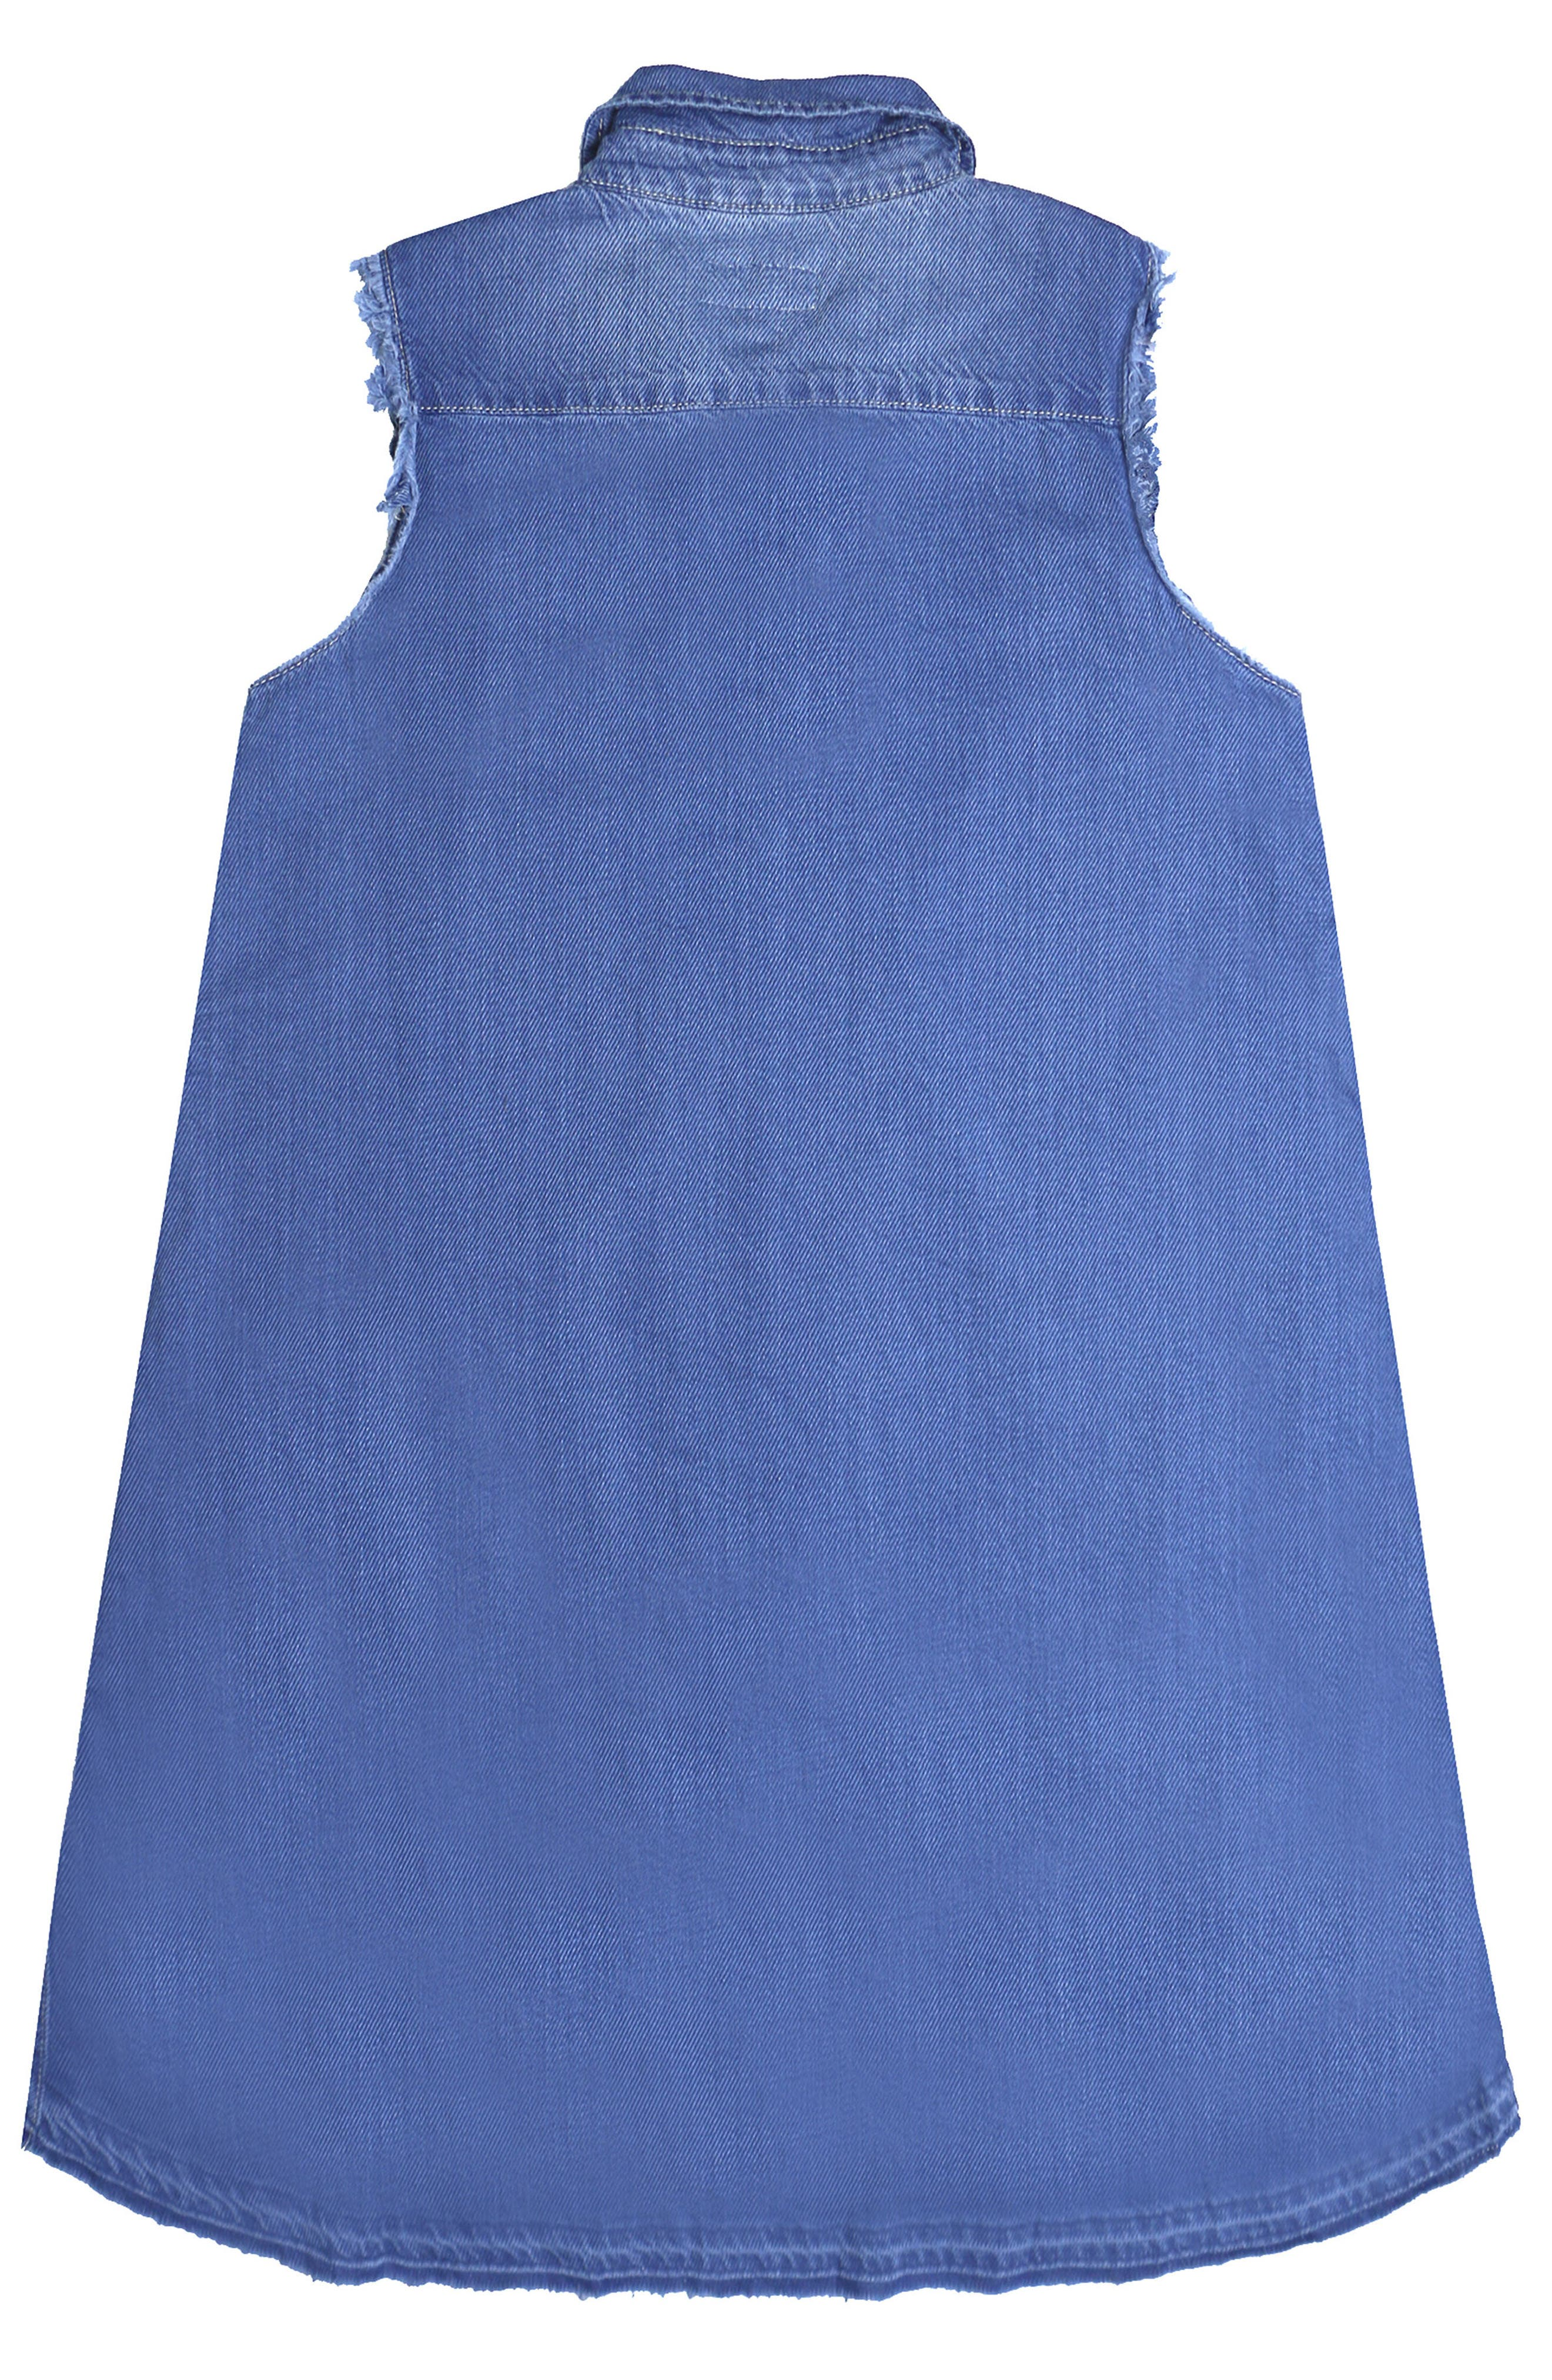 Chambray Shirt Dress,                             Alternate thumbnail 2, color,                             Indigo